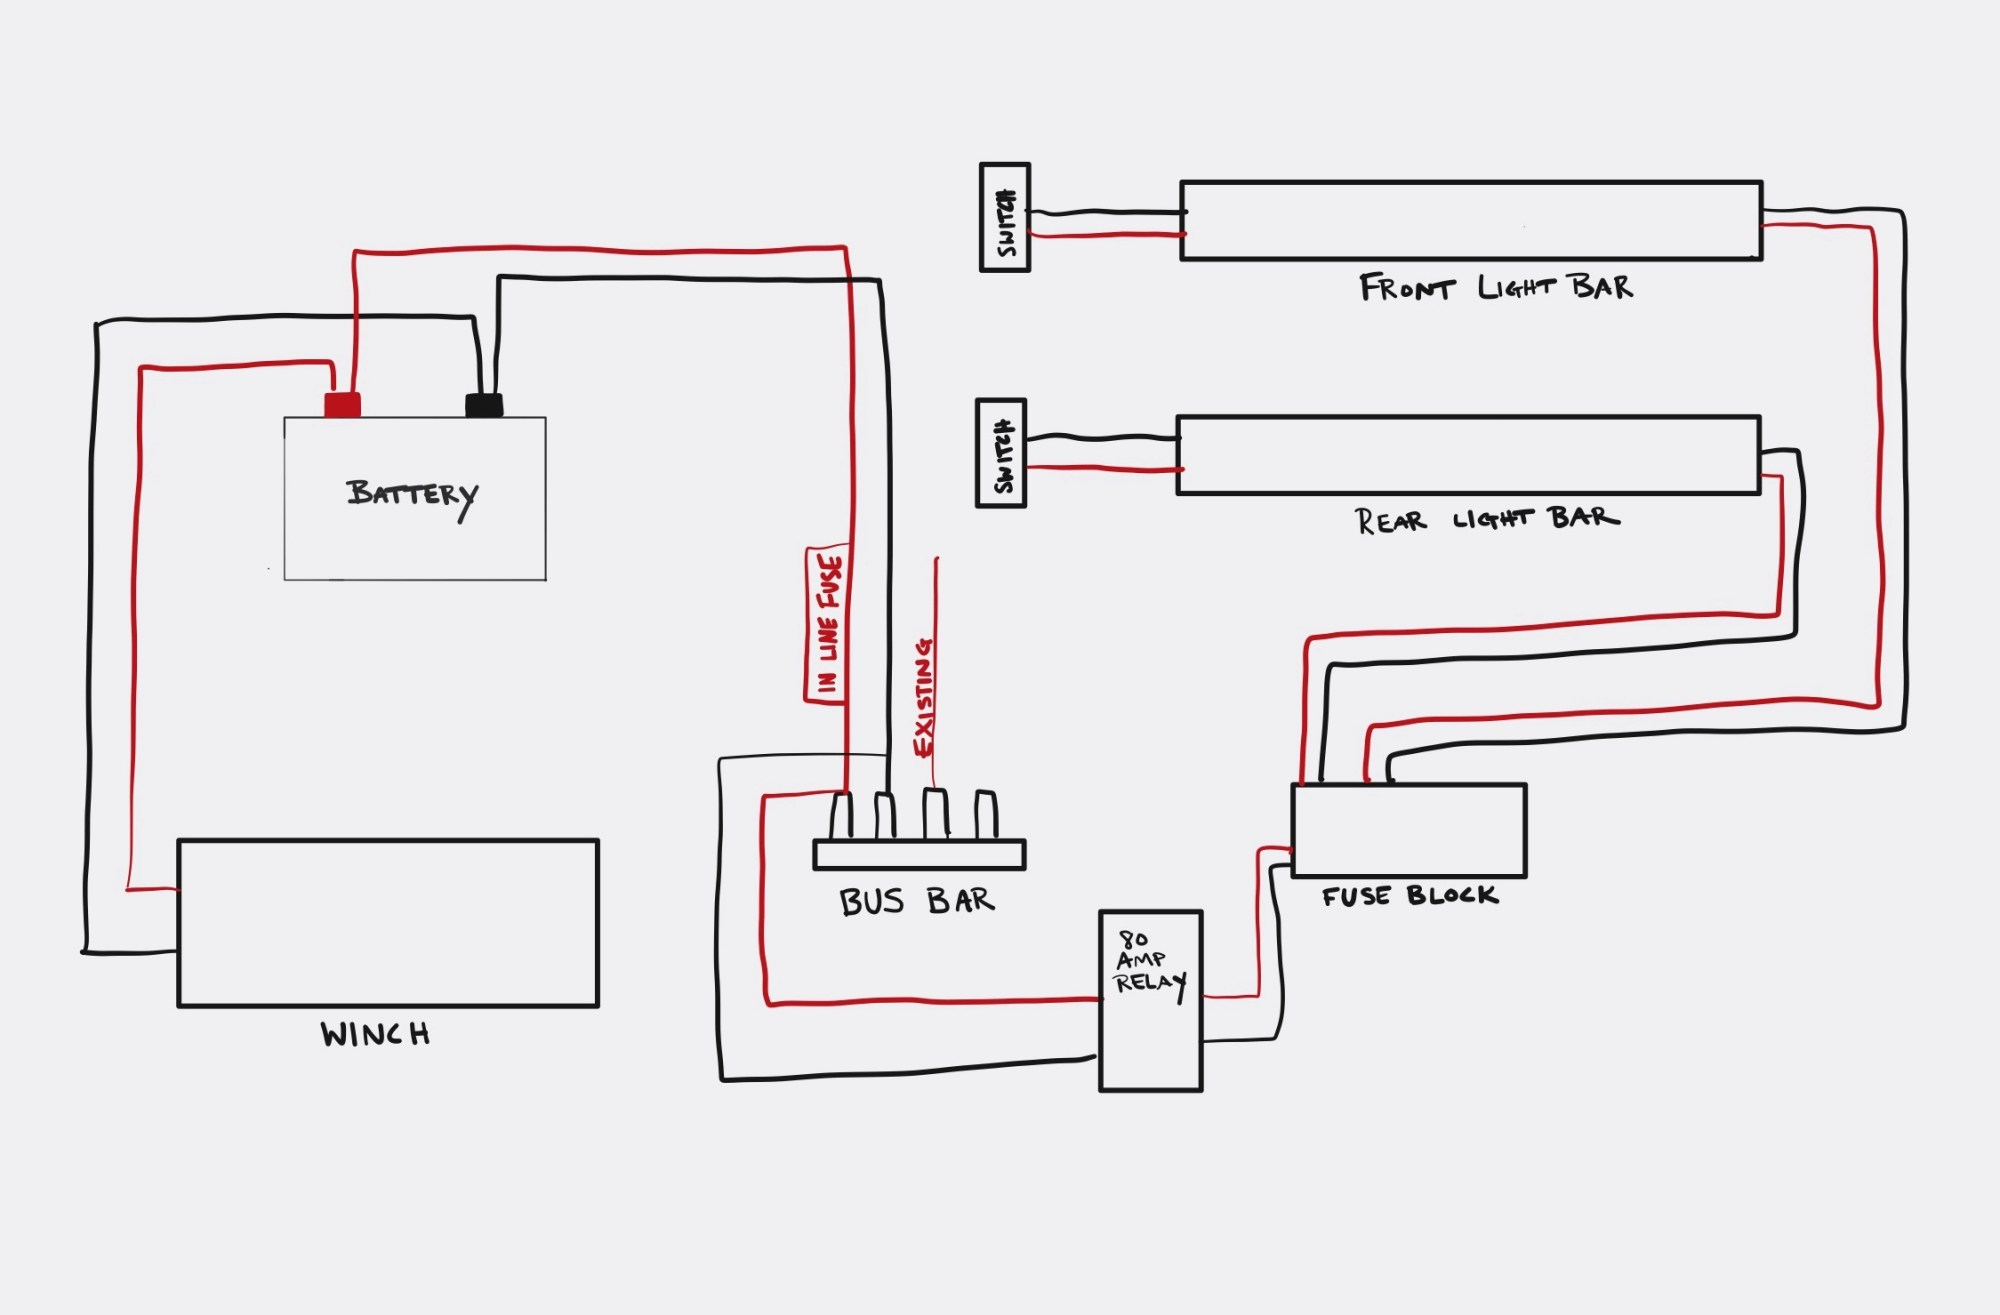 hight resolution of busbar wiring diagram wiring diagrams terms marine bus bar wiring diagram